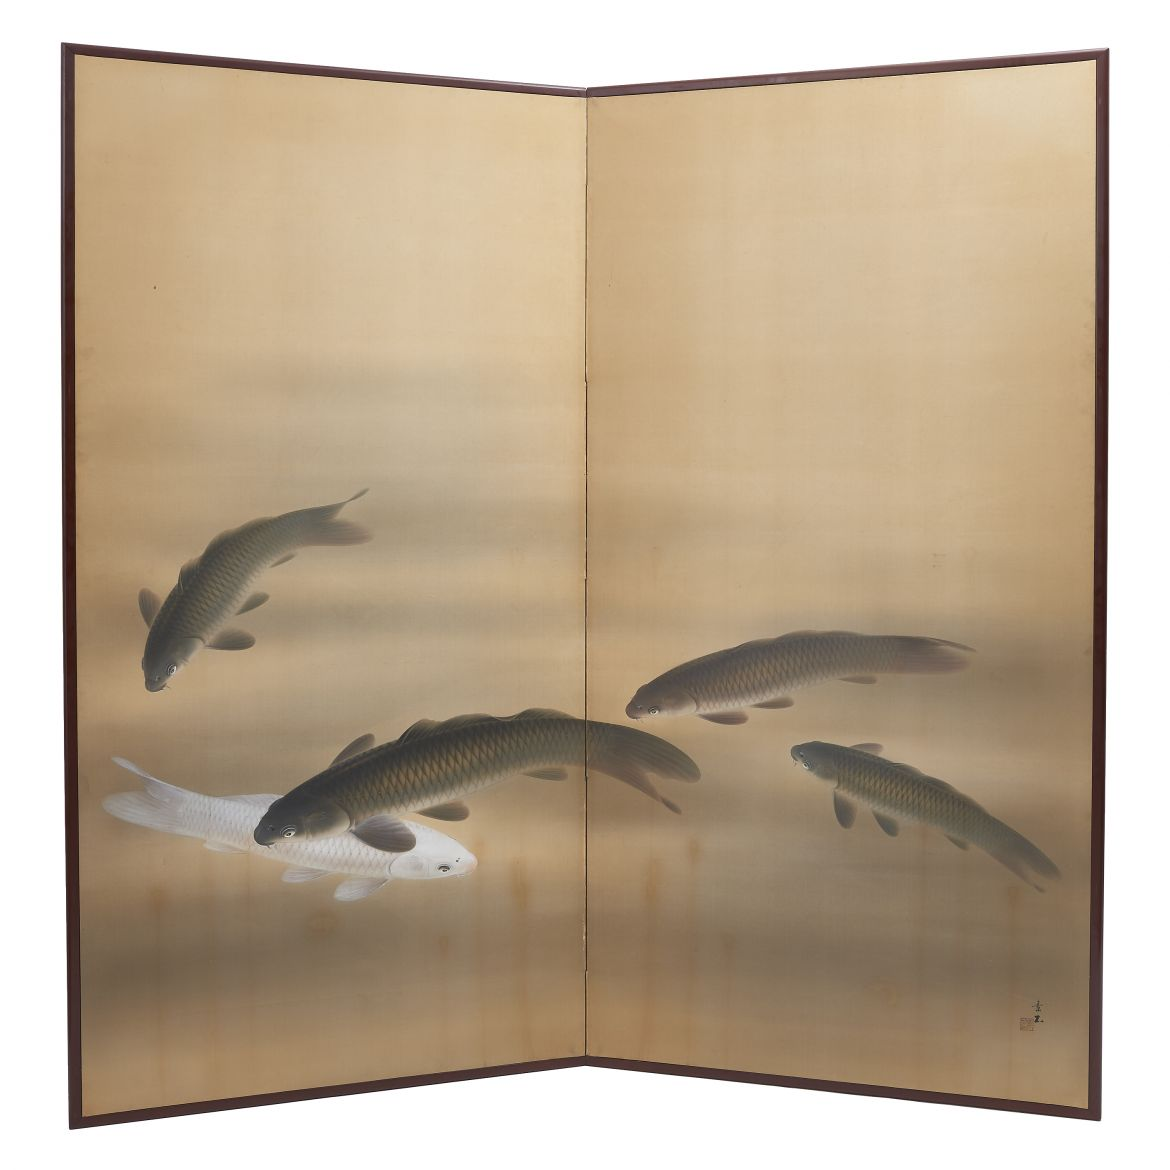 Japanese Paper Screen of Koi Carp